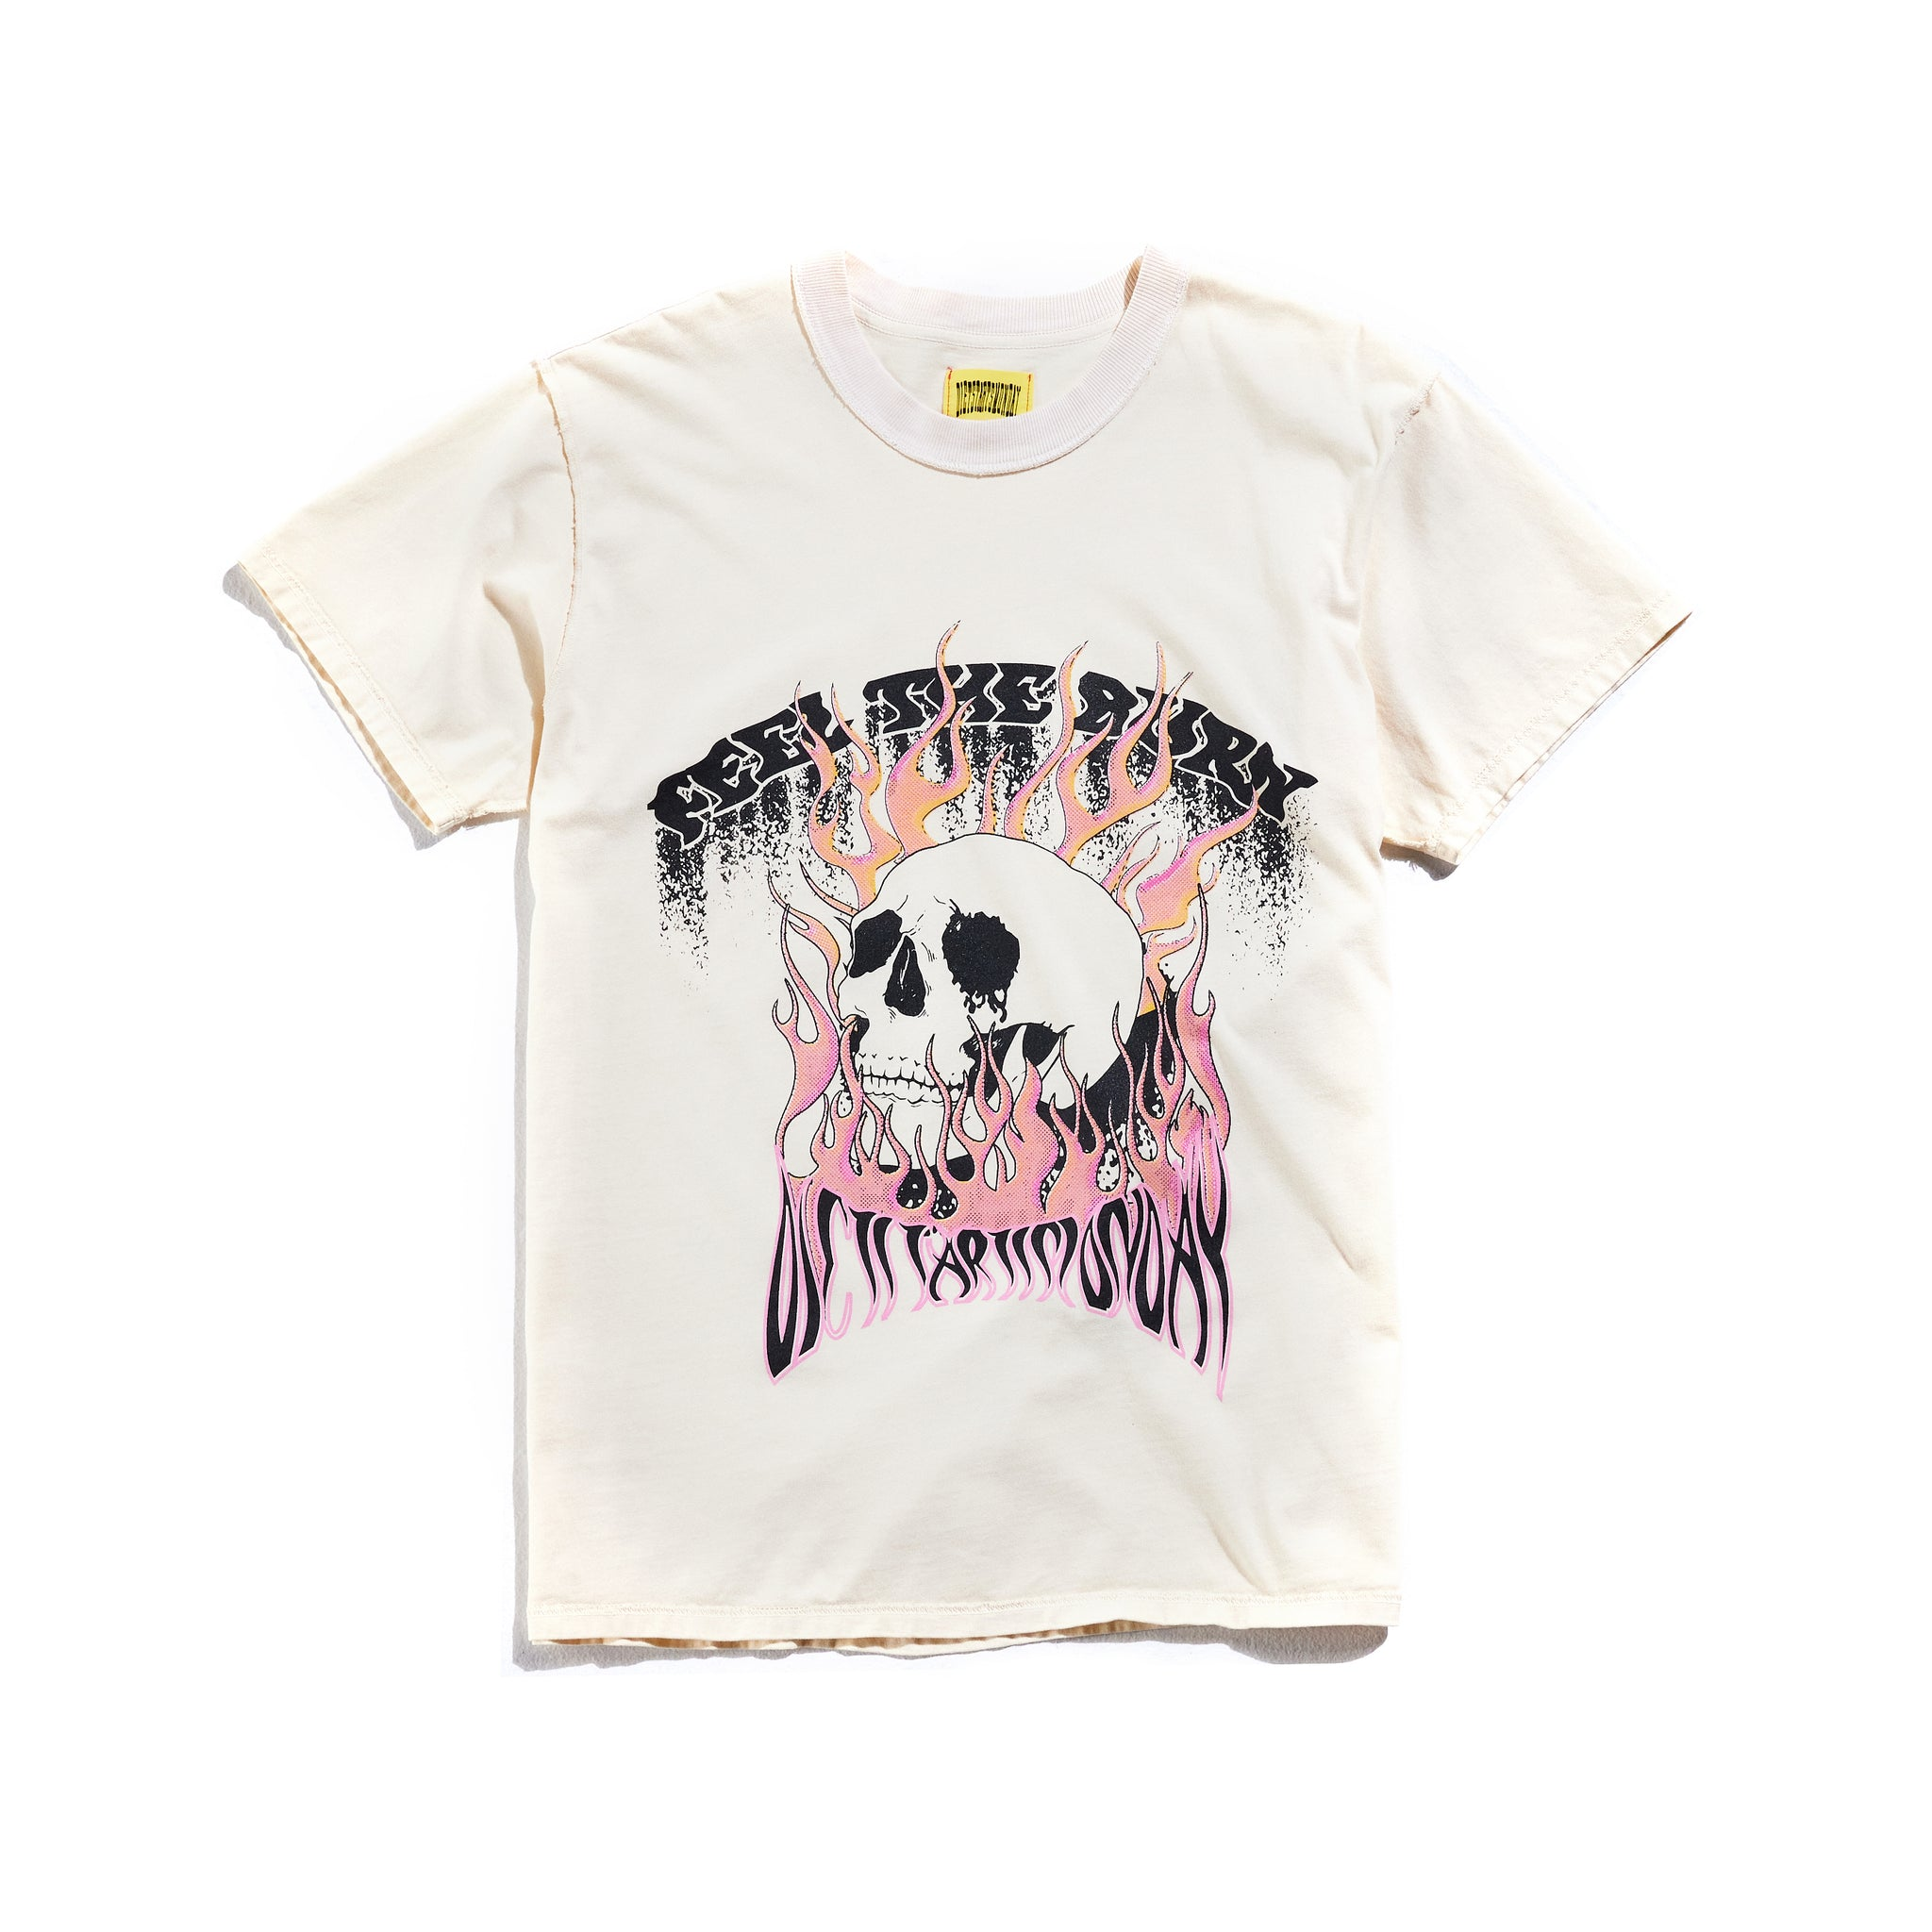 Feel the Burn Tee - Antique White